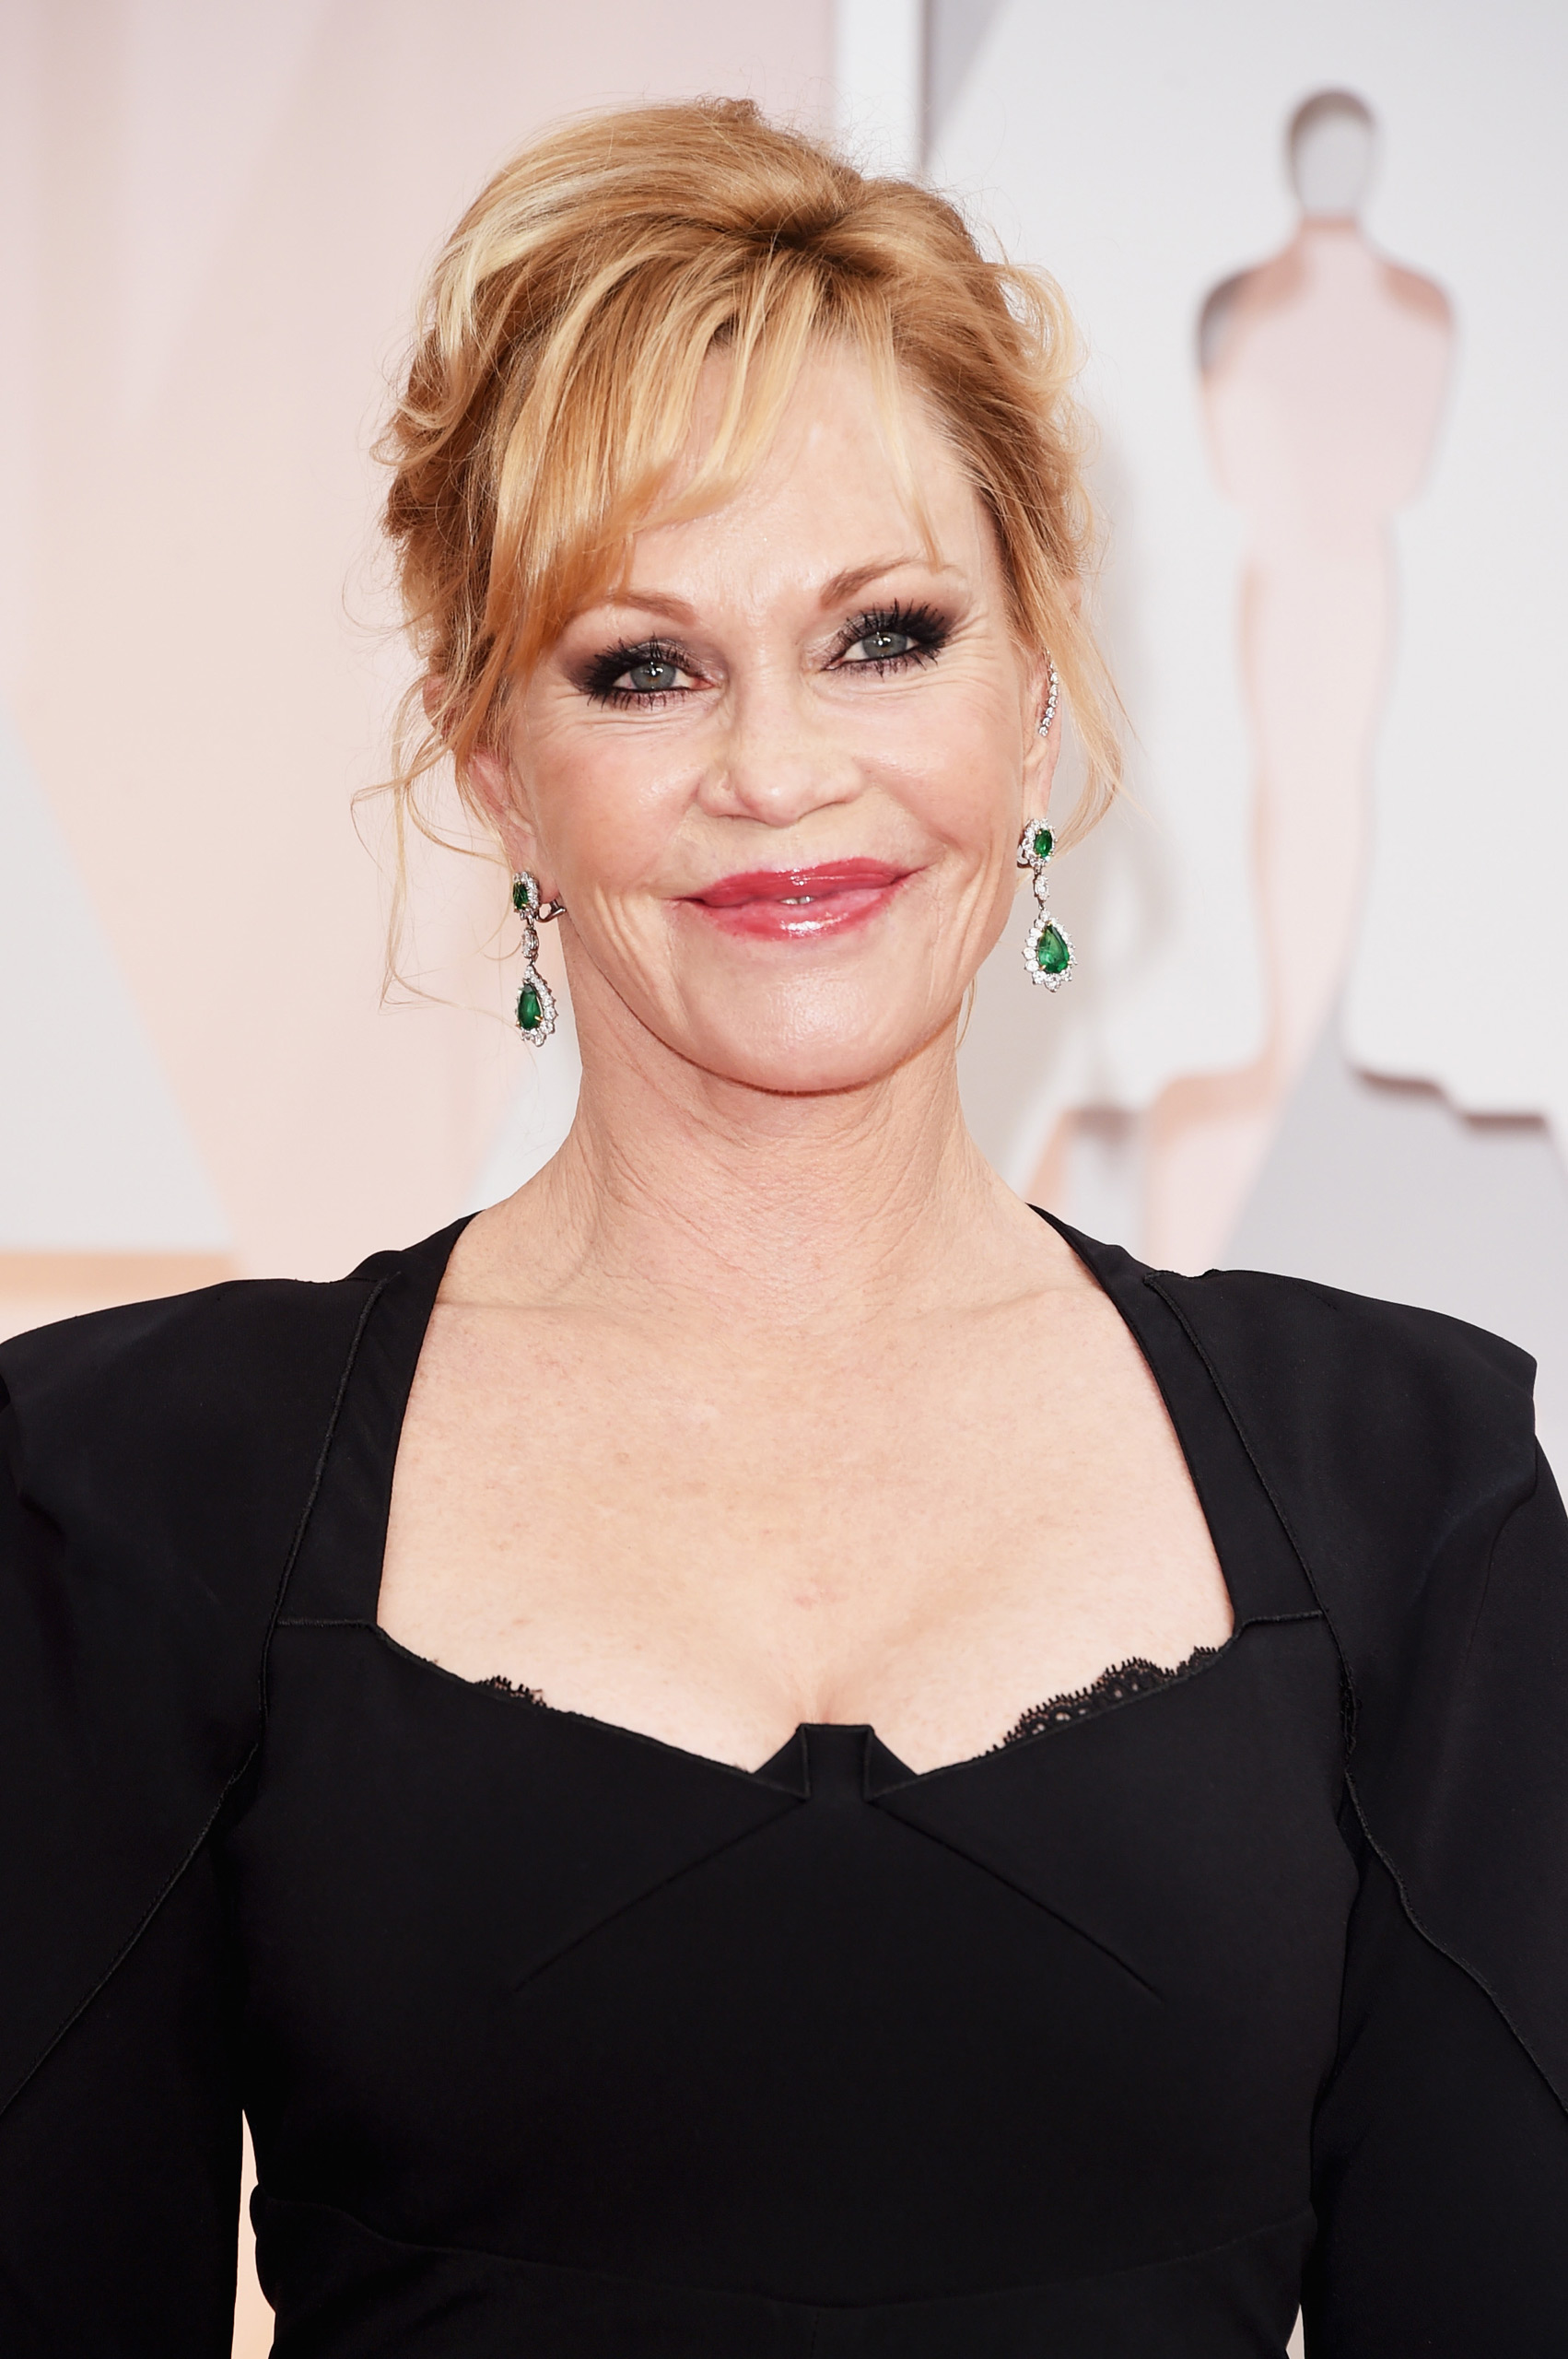 Melanie Griffith attends the 87th Annual Academy Awards on Feb. 22, 2015 in Hollywood, Calif.